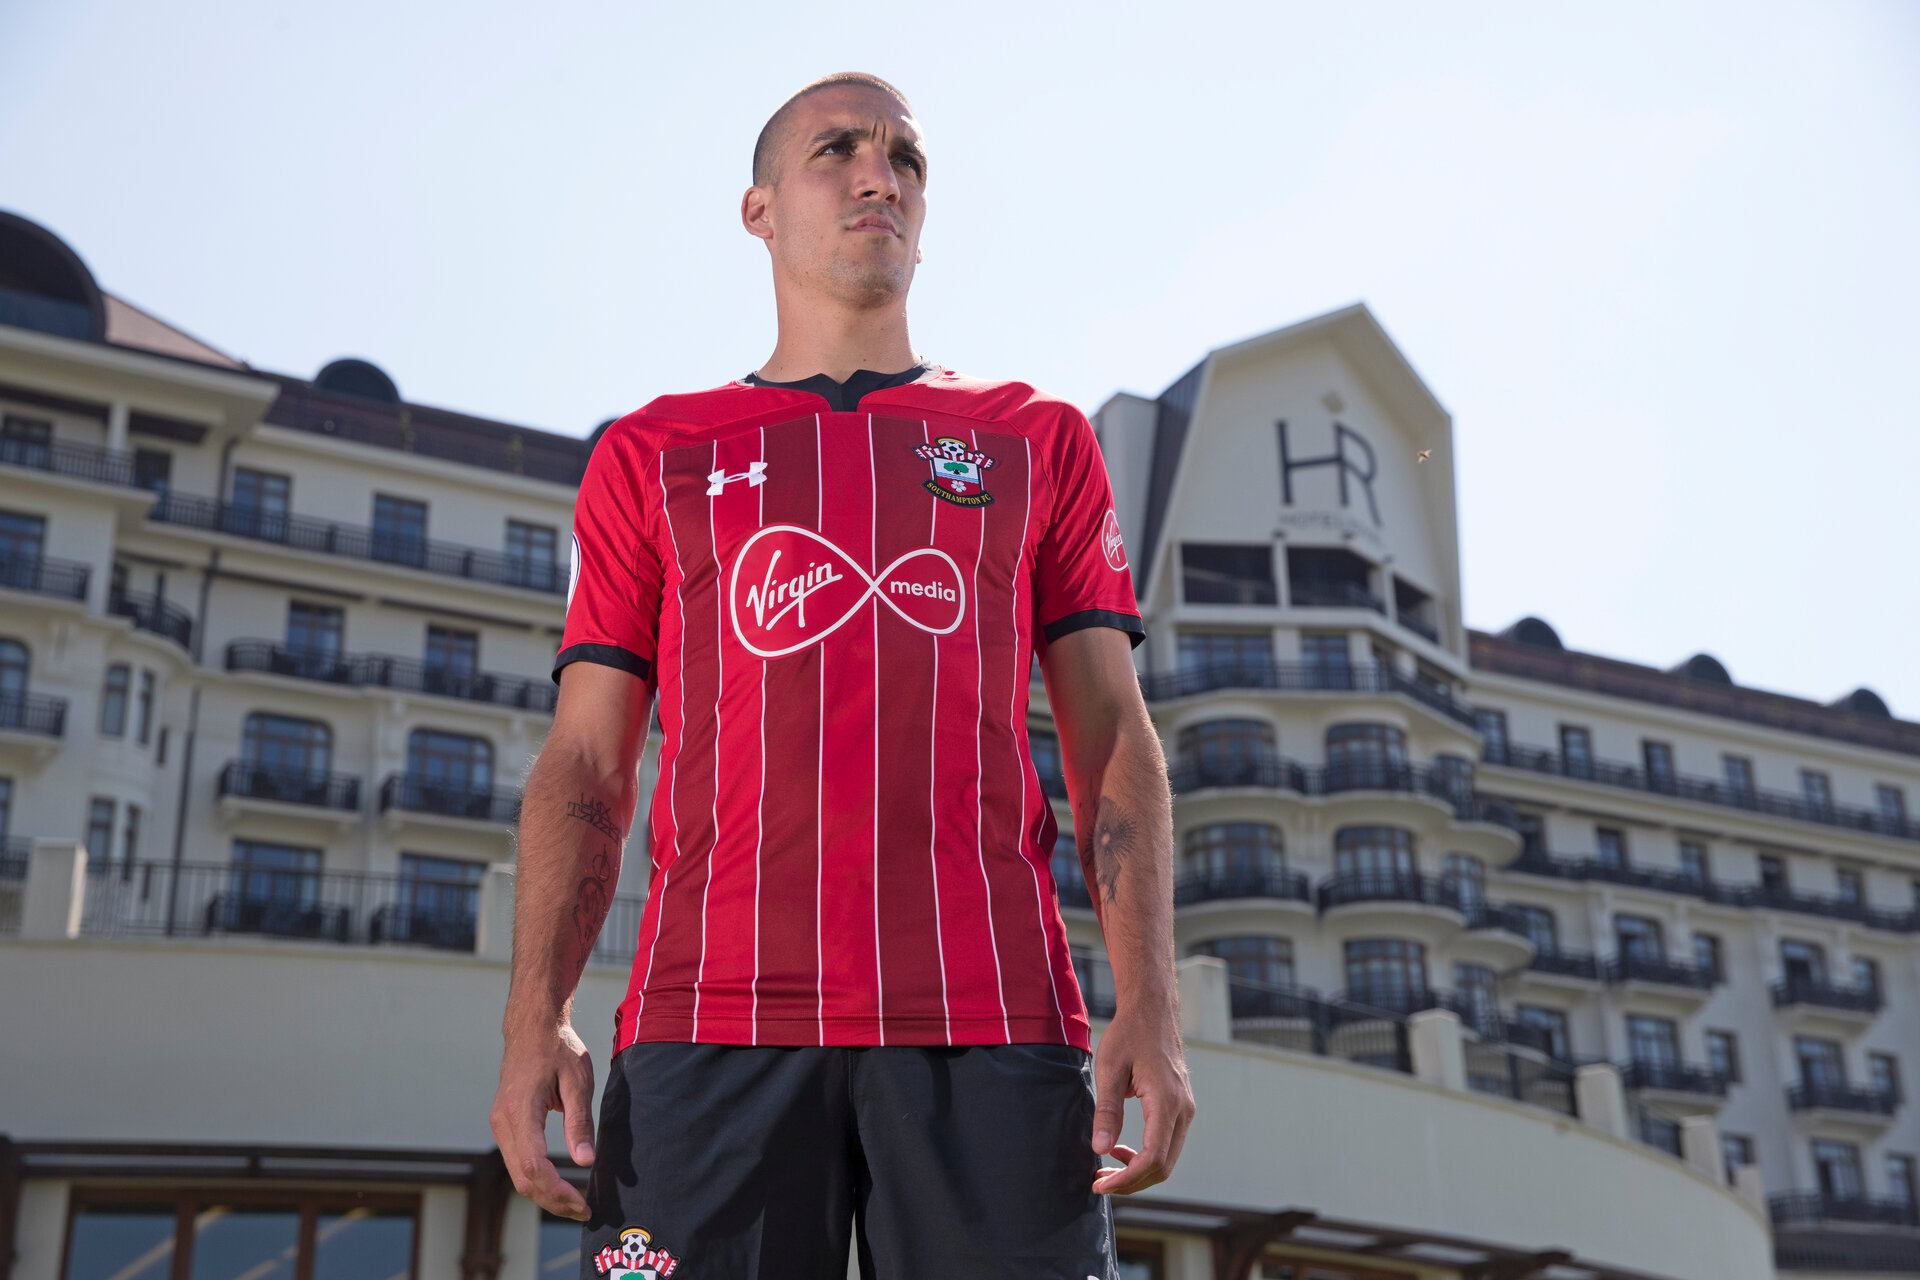 EVIAN-LES-BAINS, FRANCE - JULY 24: Oriol Romeu pictured in Southampton FC's third kit, at the Hotel Royal during day 2 of Southampton FC's pre-season training camp on July 24, 2018 in Evian-les-Bains, France. (Photo by Matt Watson/Southampton FC via Getty Images)